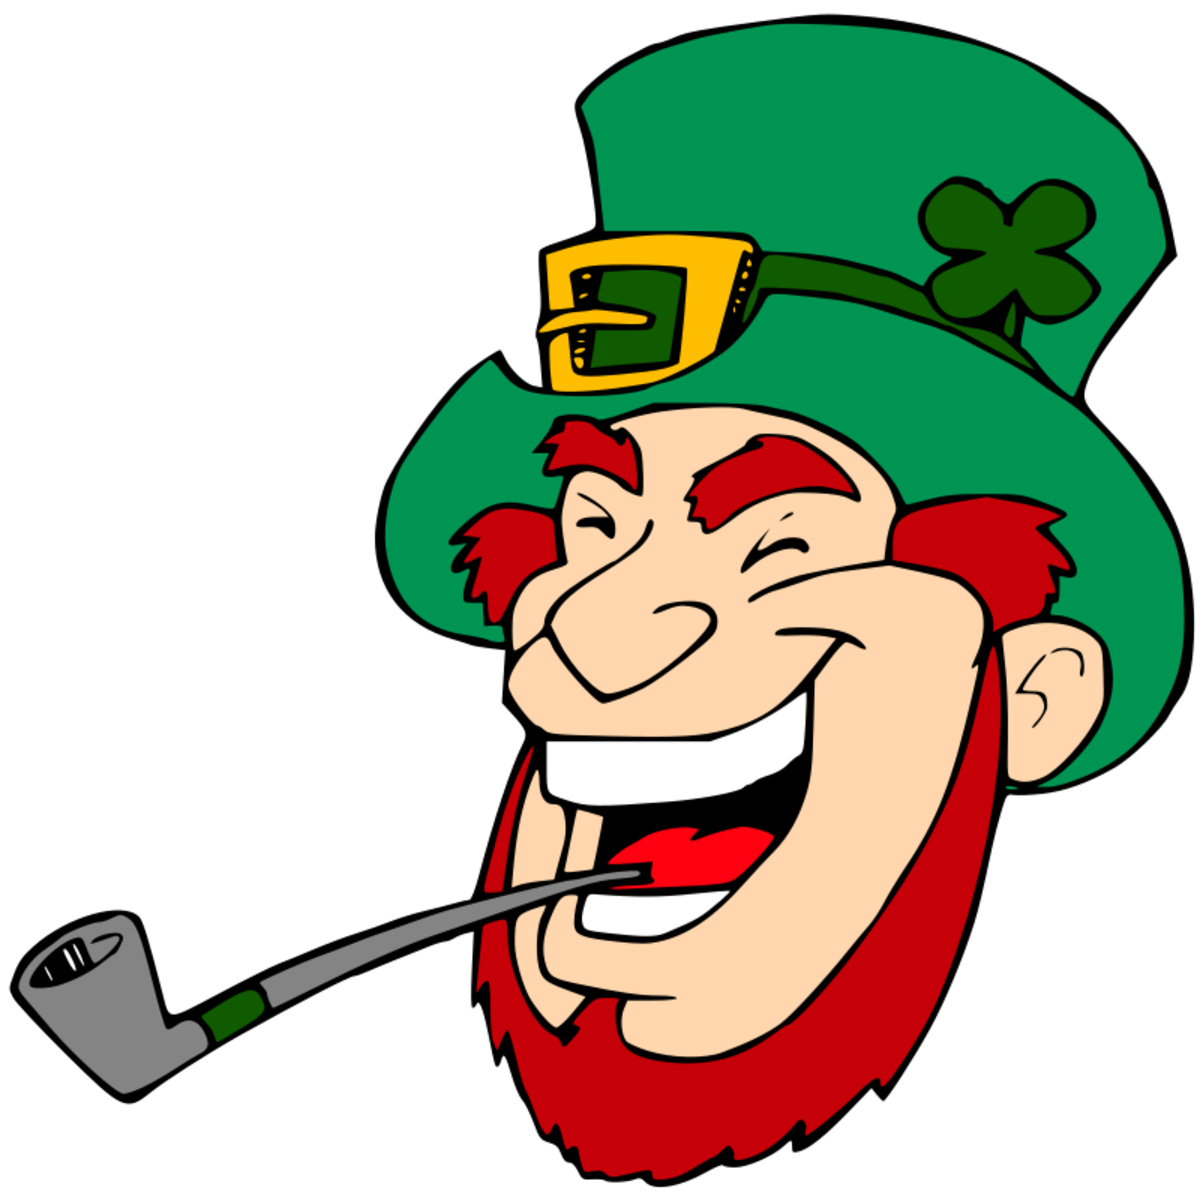 Laughing Leprechaun with Red Beard Smoking a Pipe